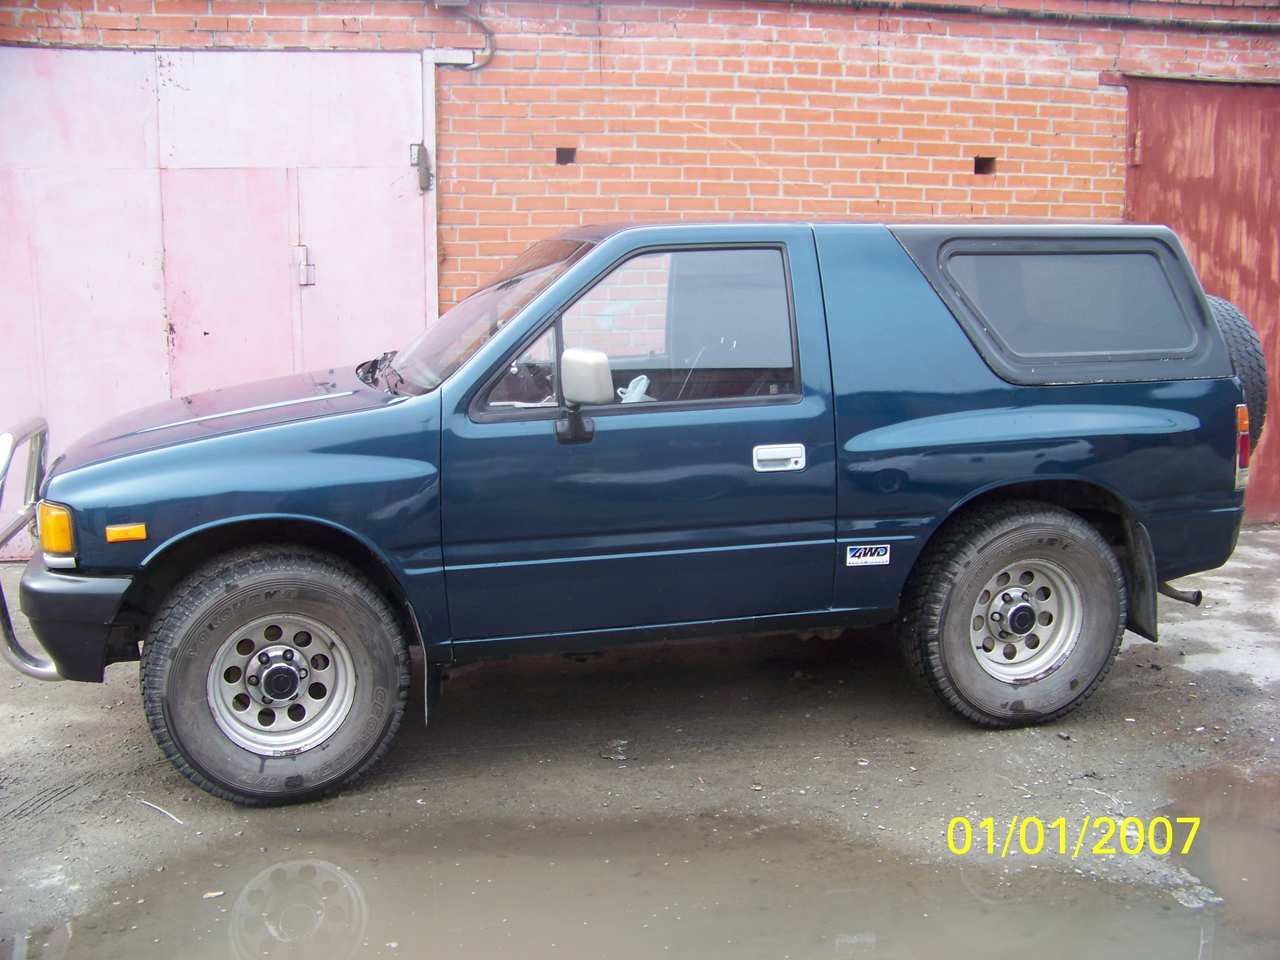 1990 isuzu amigo pictures  2000cc   gasoline  manual for sale 1999 isuzu amigo manual isuzu amigo manual pdf